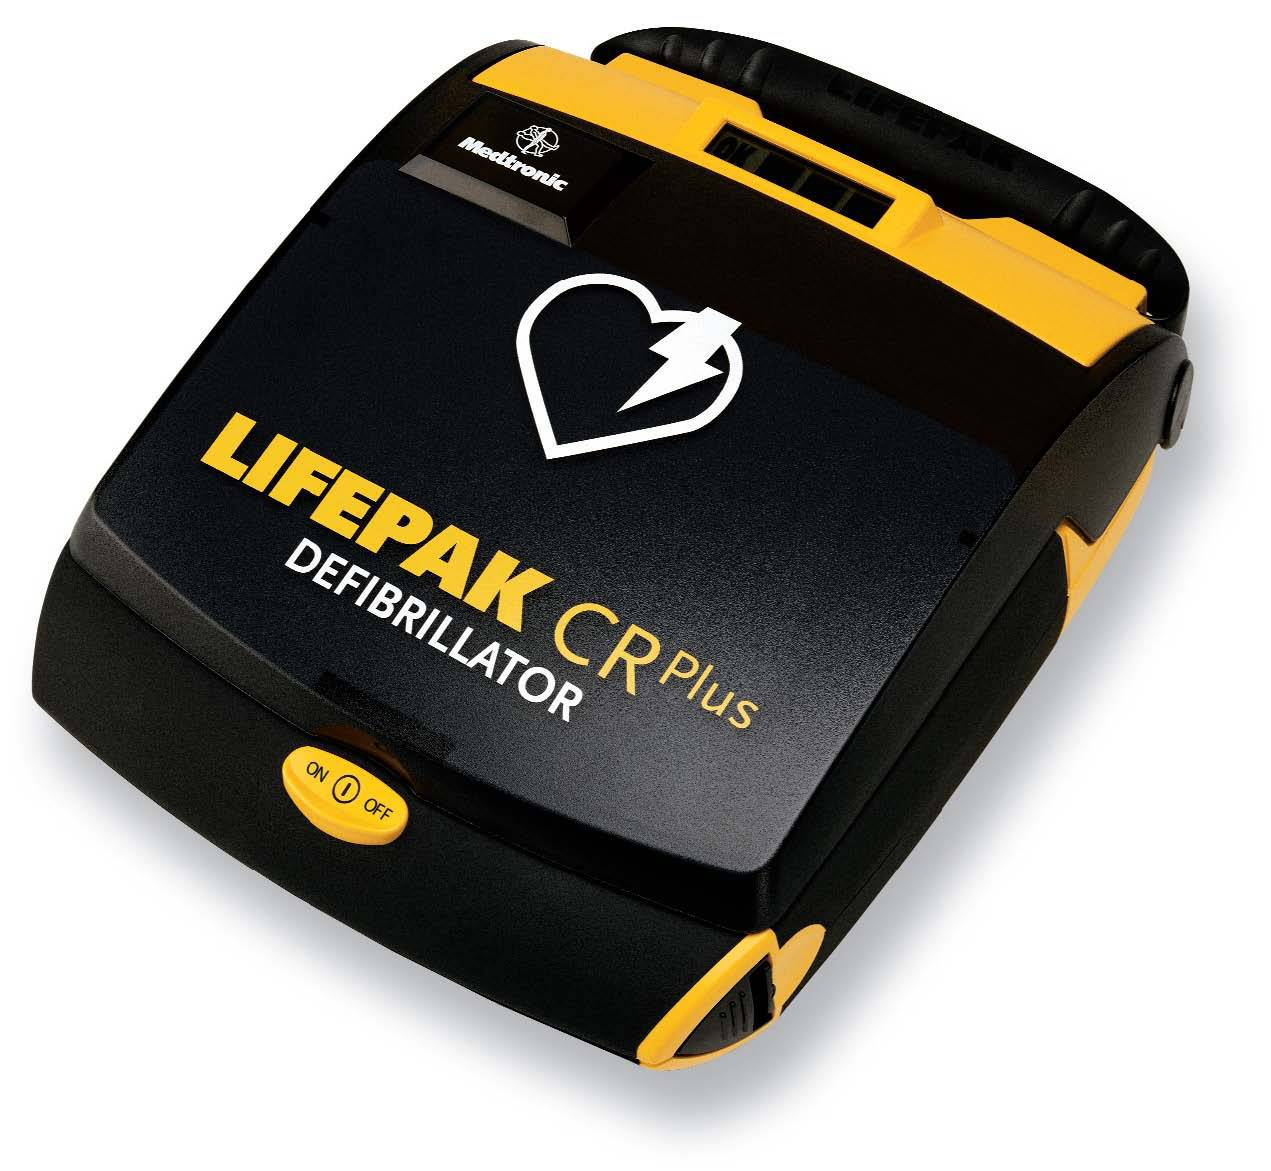 physio control lifepak cr plus aed fully auto no shock. Black Bedroom Furniture Sets. Home Design Ideas